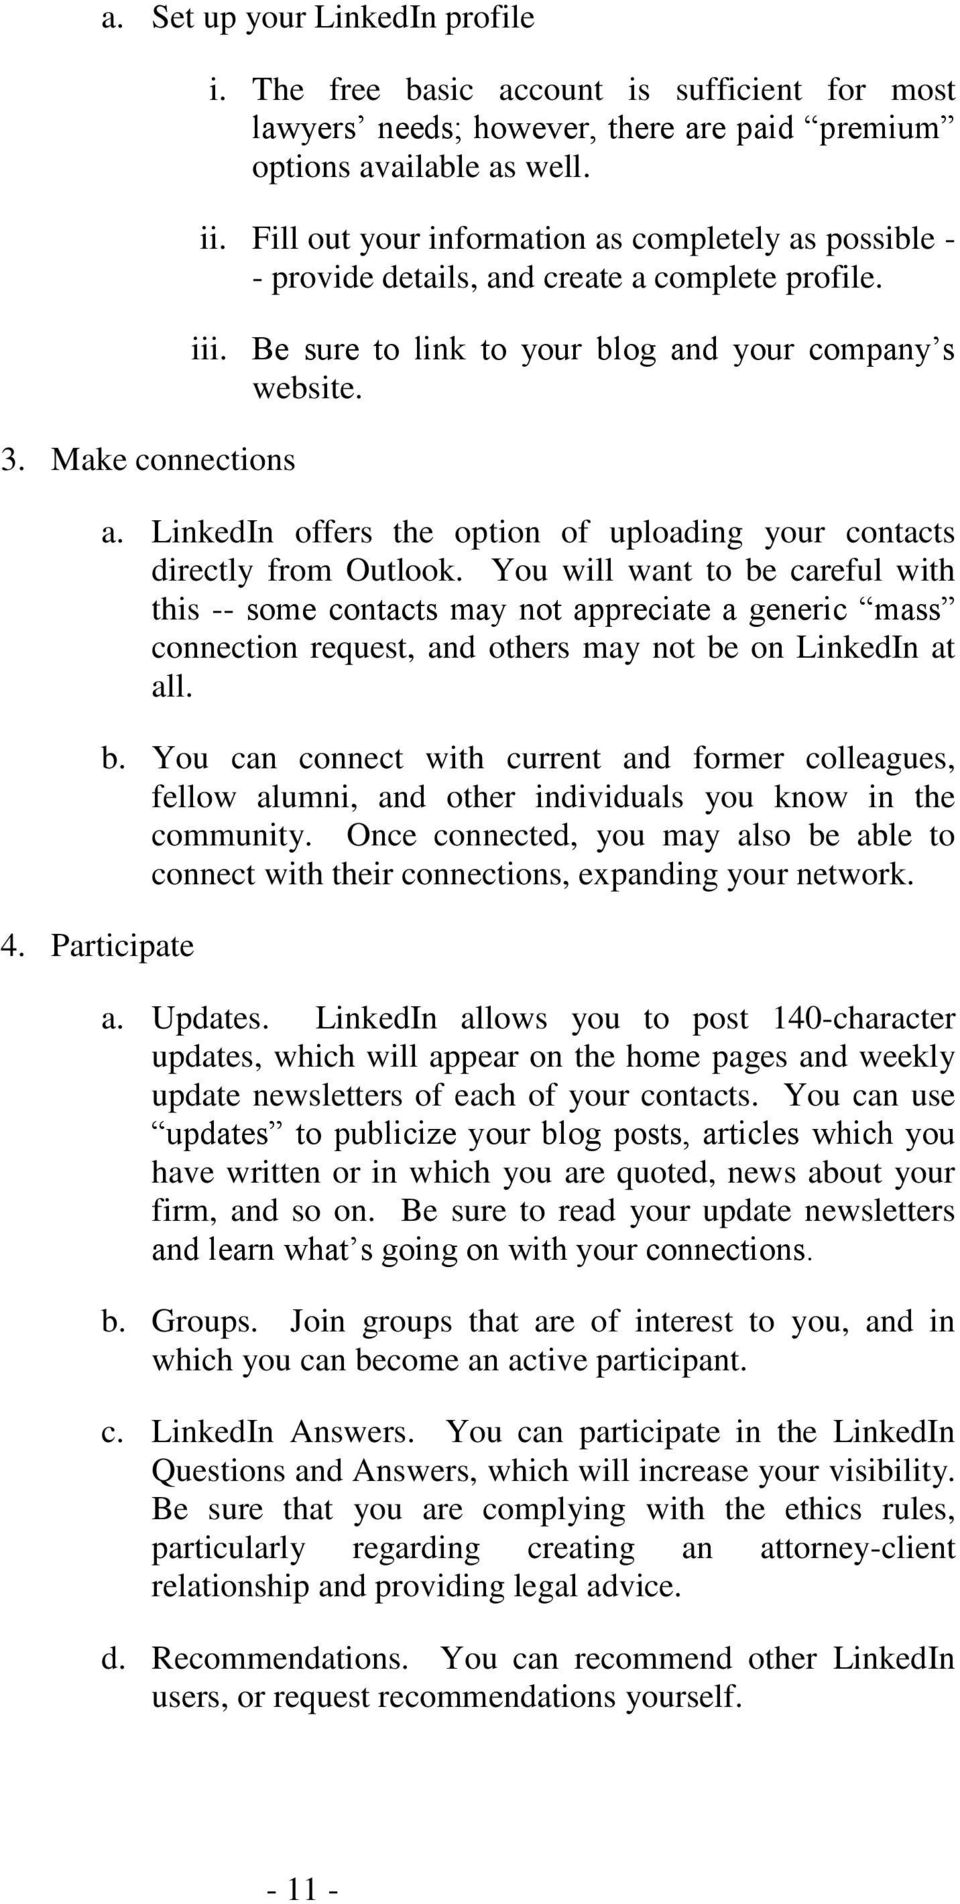 You will want to be careful with this -- some contacts may not appreciate a generic mass connection request, and others may not be on LinkedIn at all. b. You can connect with current and former colleagues, fellow alumni, and other individuals you know in the community.